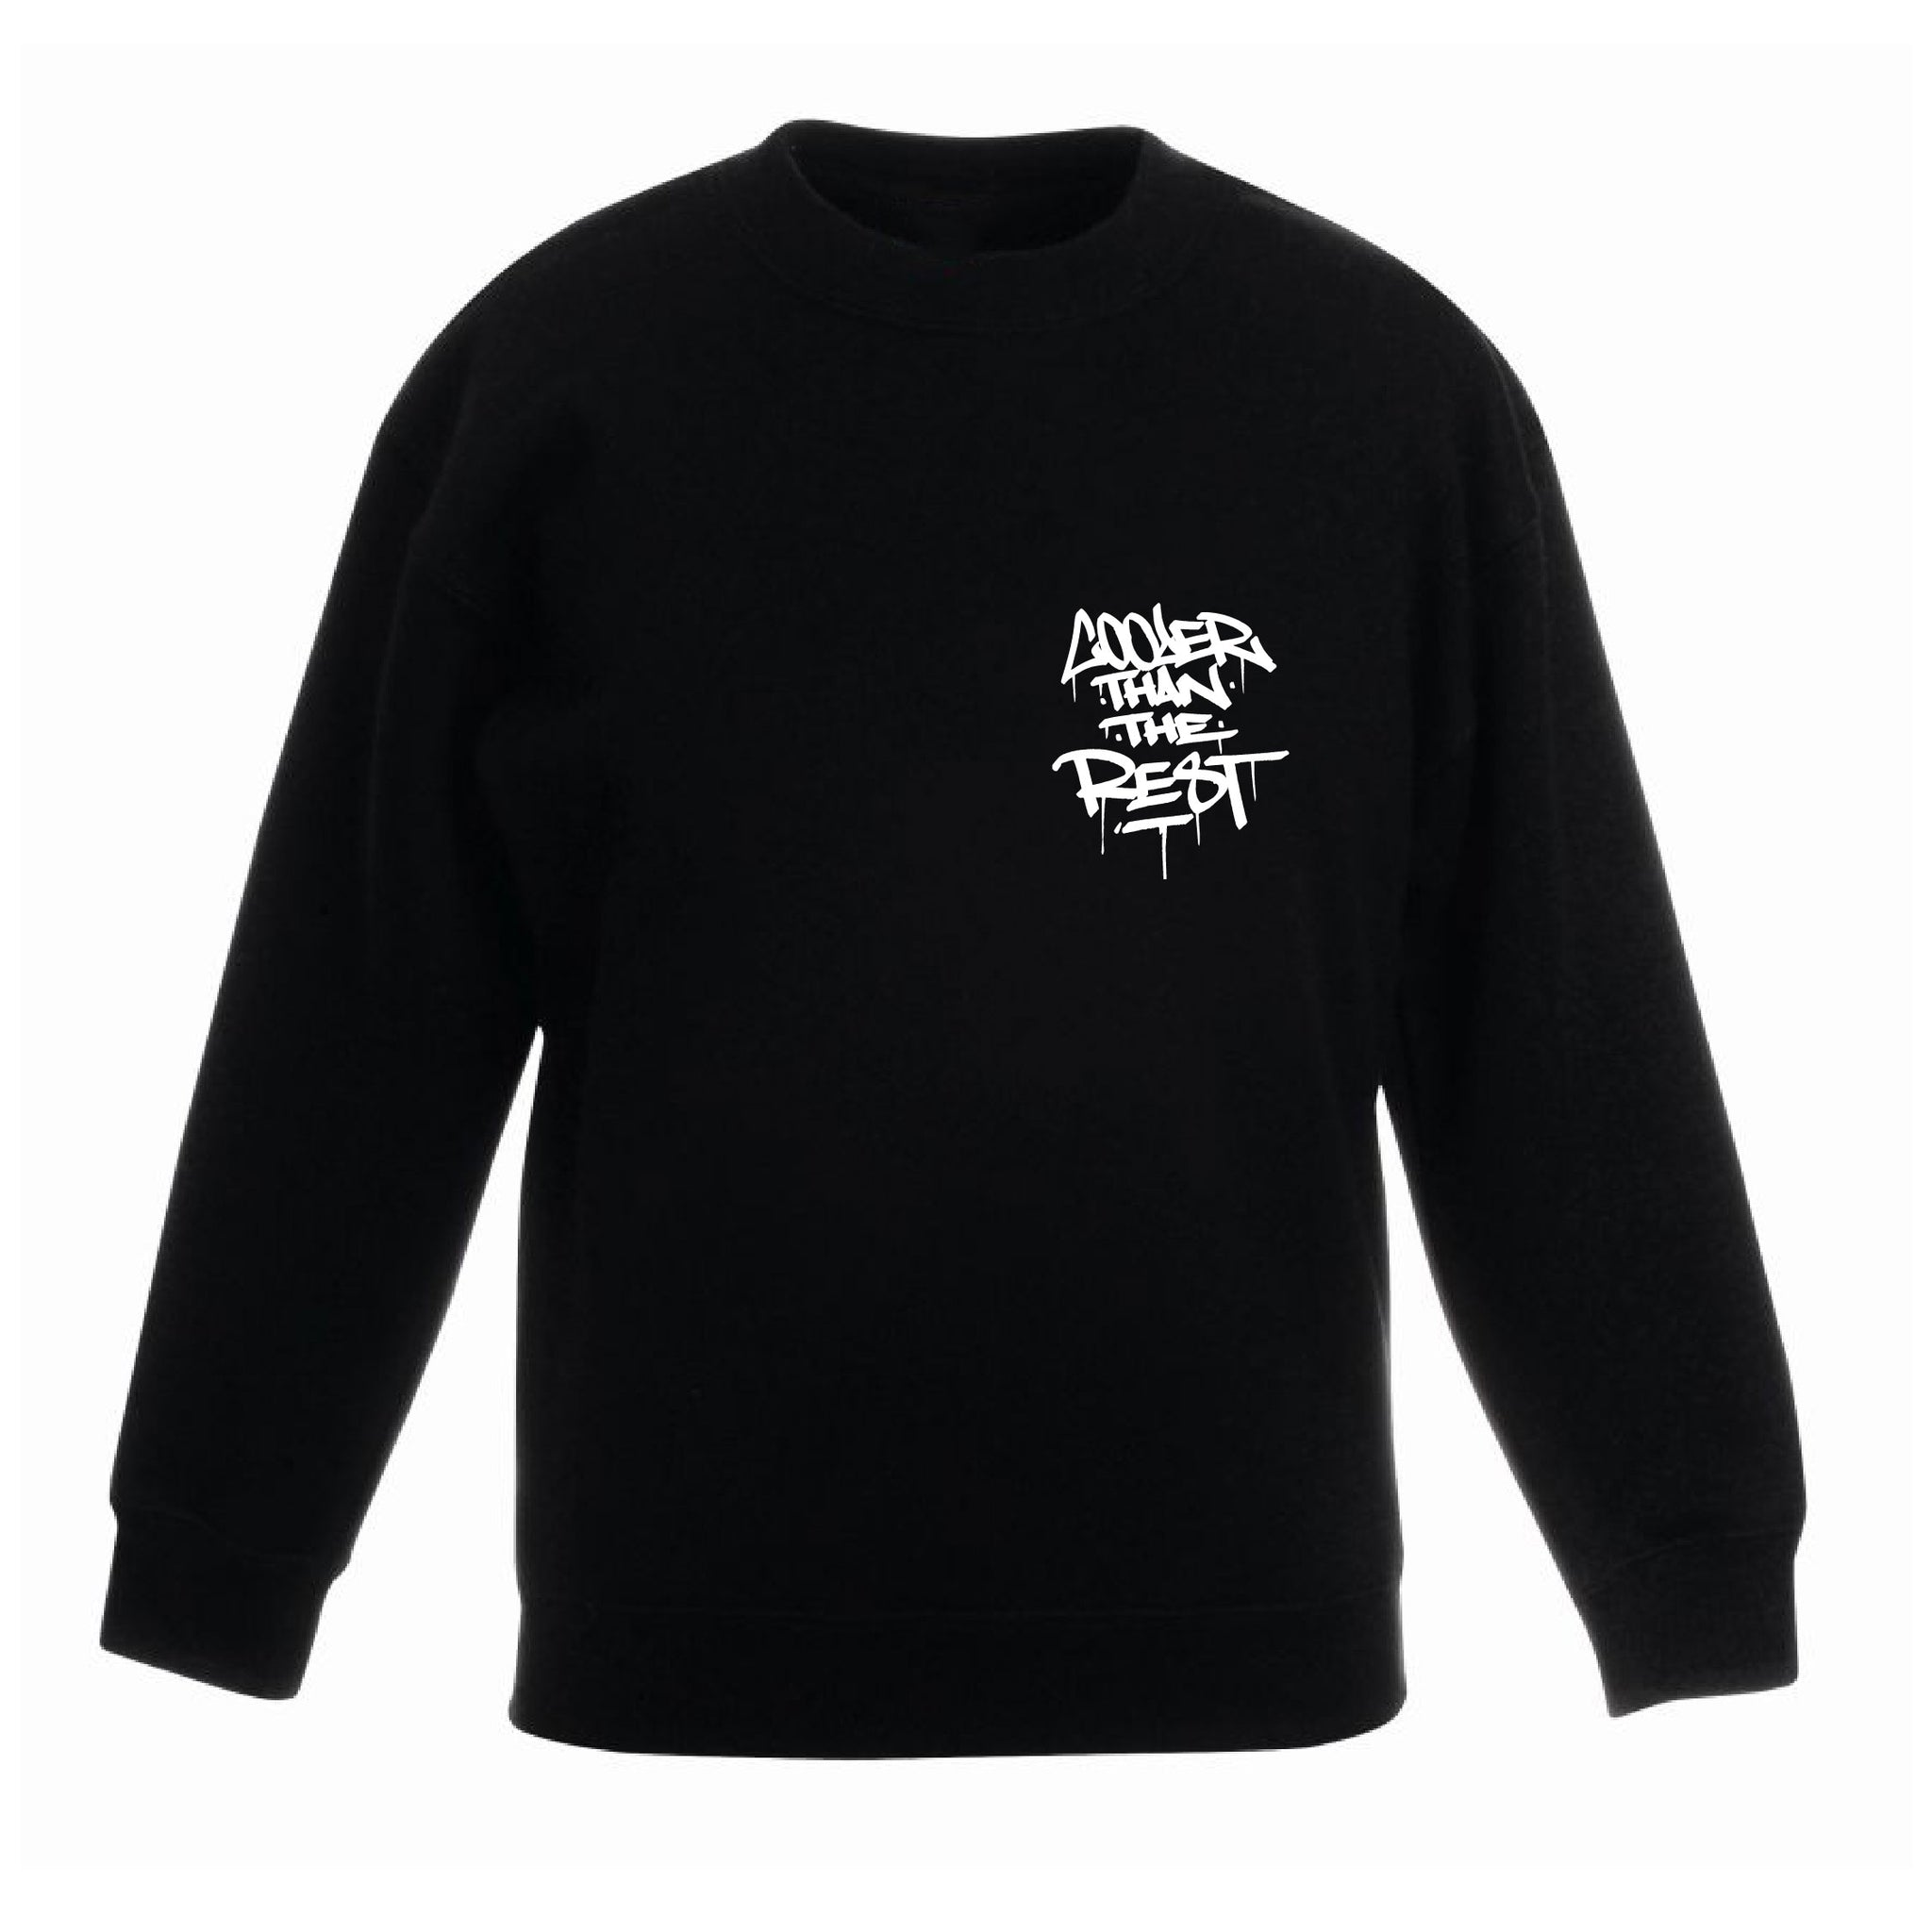 The Ghetto Blaster Sweatshirt